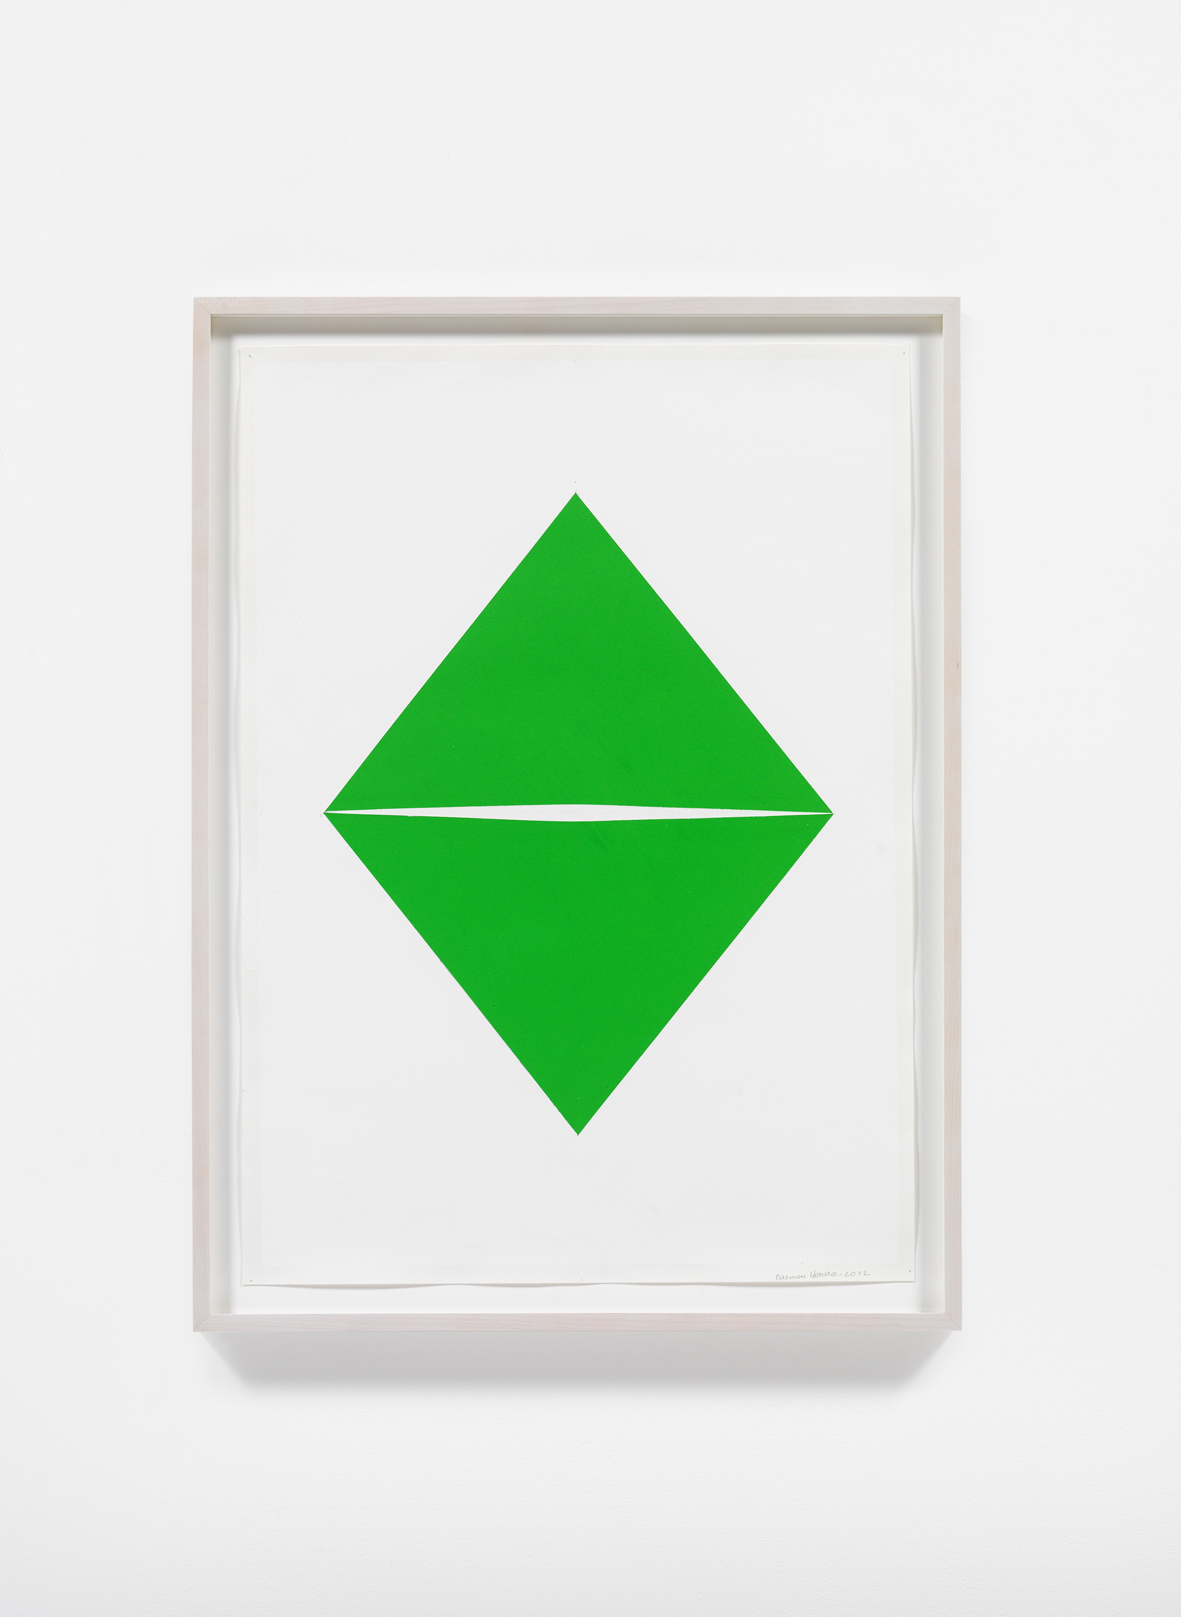 Carmen Herrera, Untitled, 2012. Acrylic and pencil on paper. Courtesy the artist and Lisson Gallery